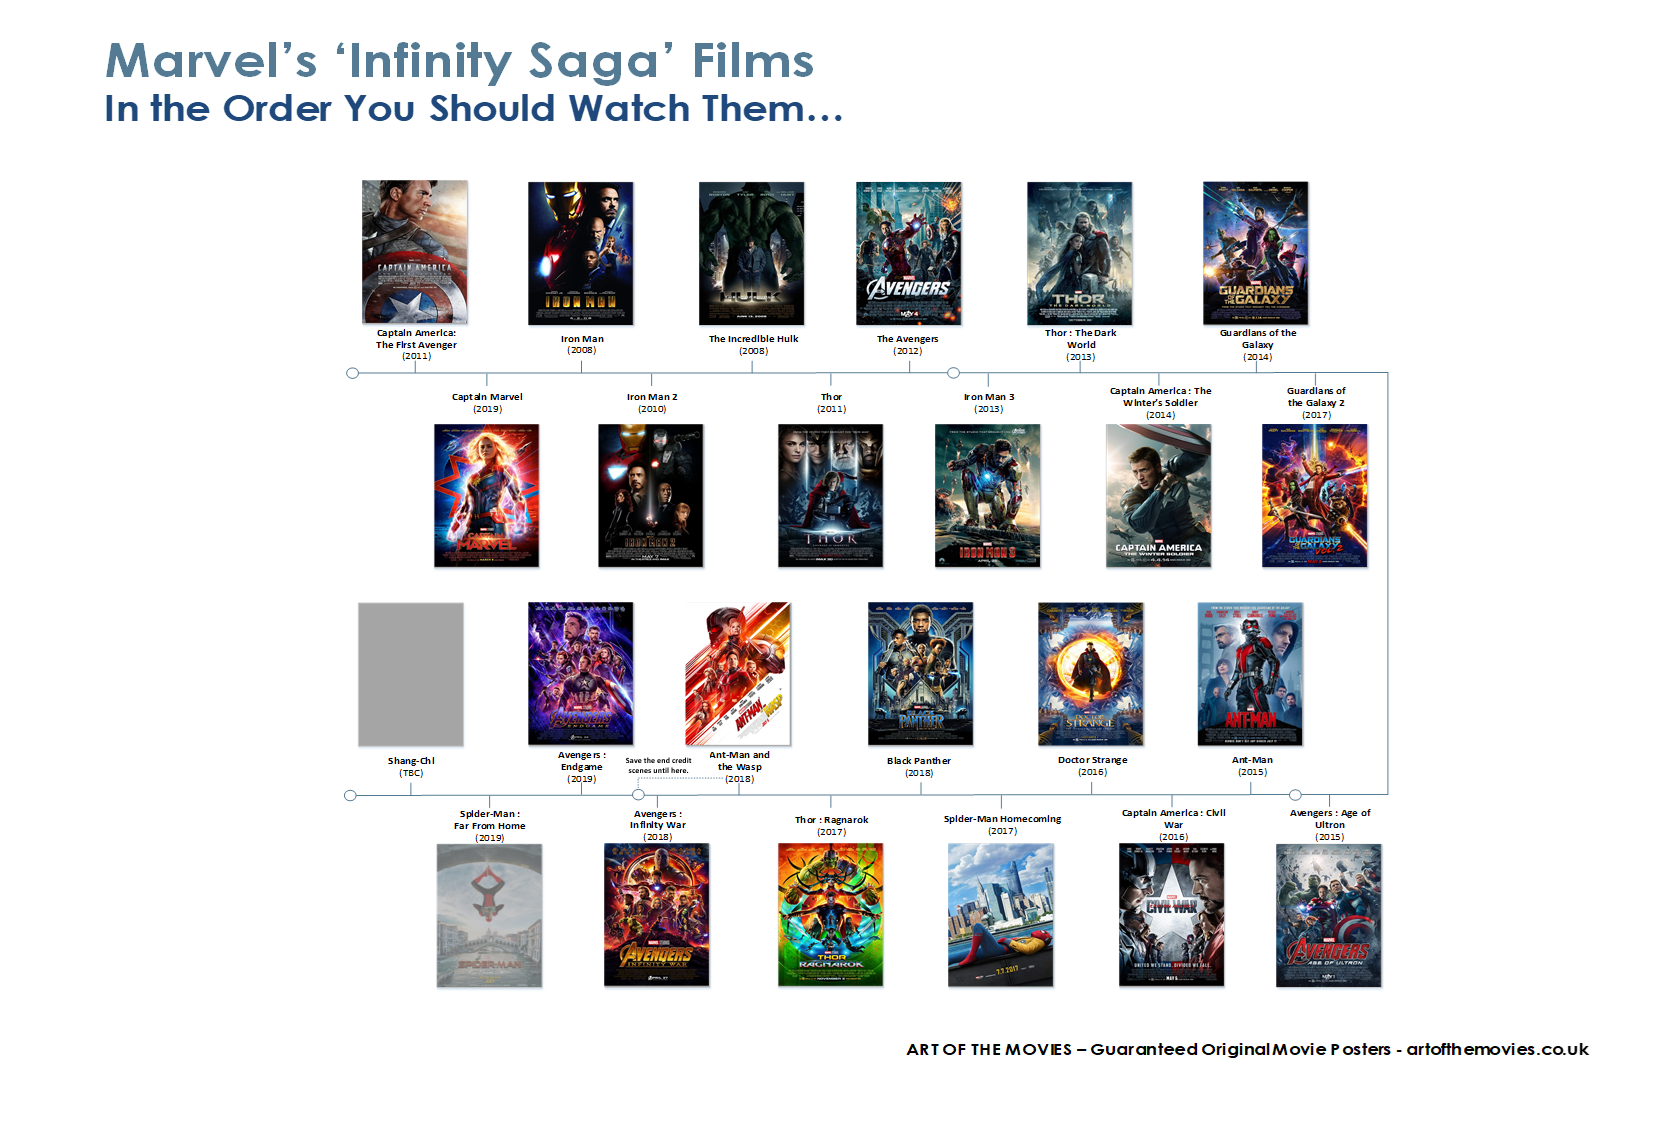 An Infographic showing the right order to watch the Marvel Infinity Saga Films / movies.